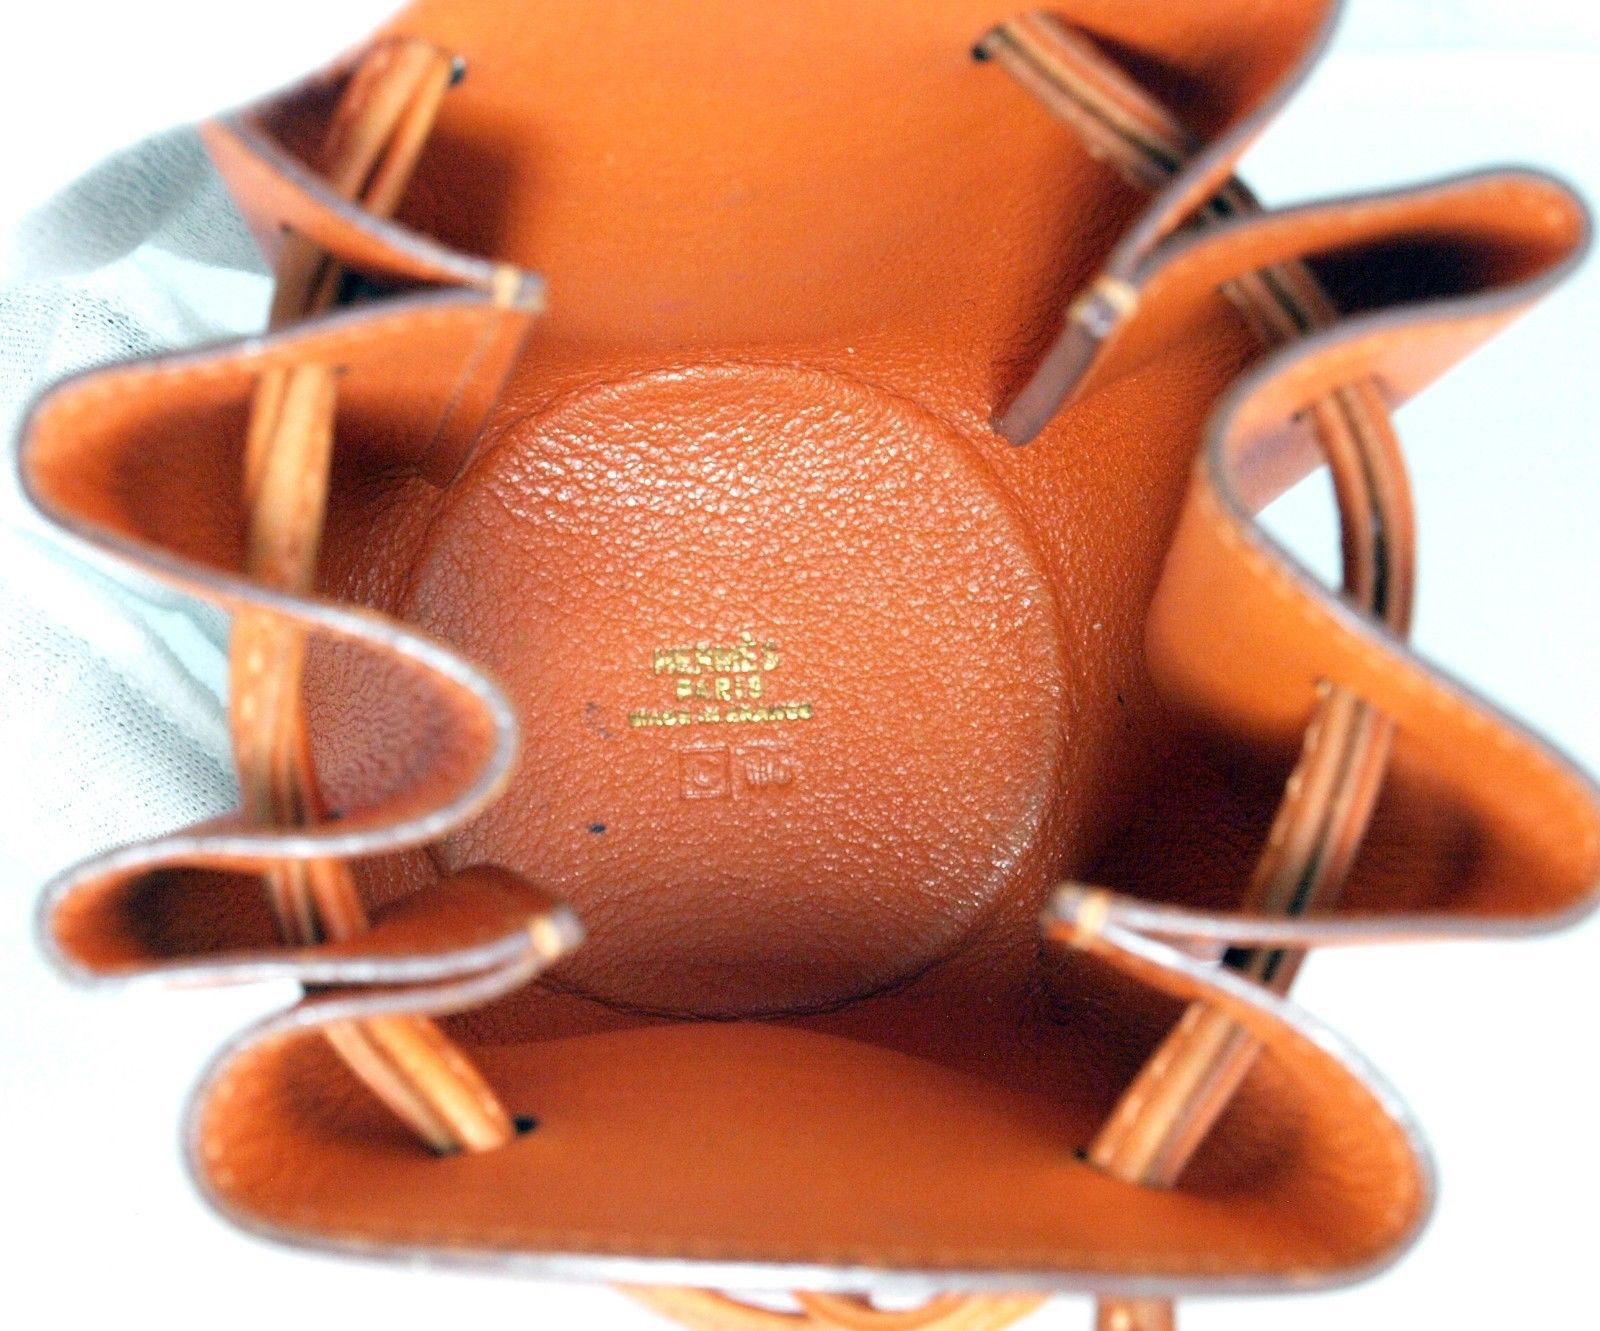 Authentic HERMES Paris Orange Leather Tiny Cosmetic Pouch Wristlet Purse France image 11